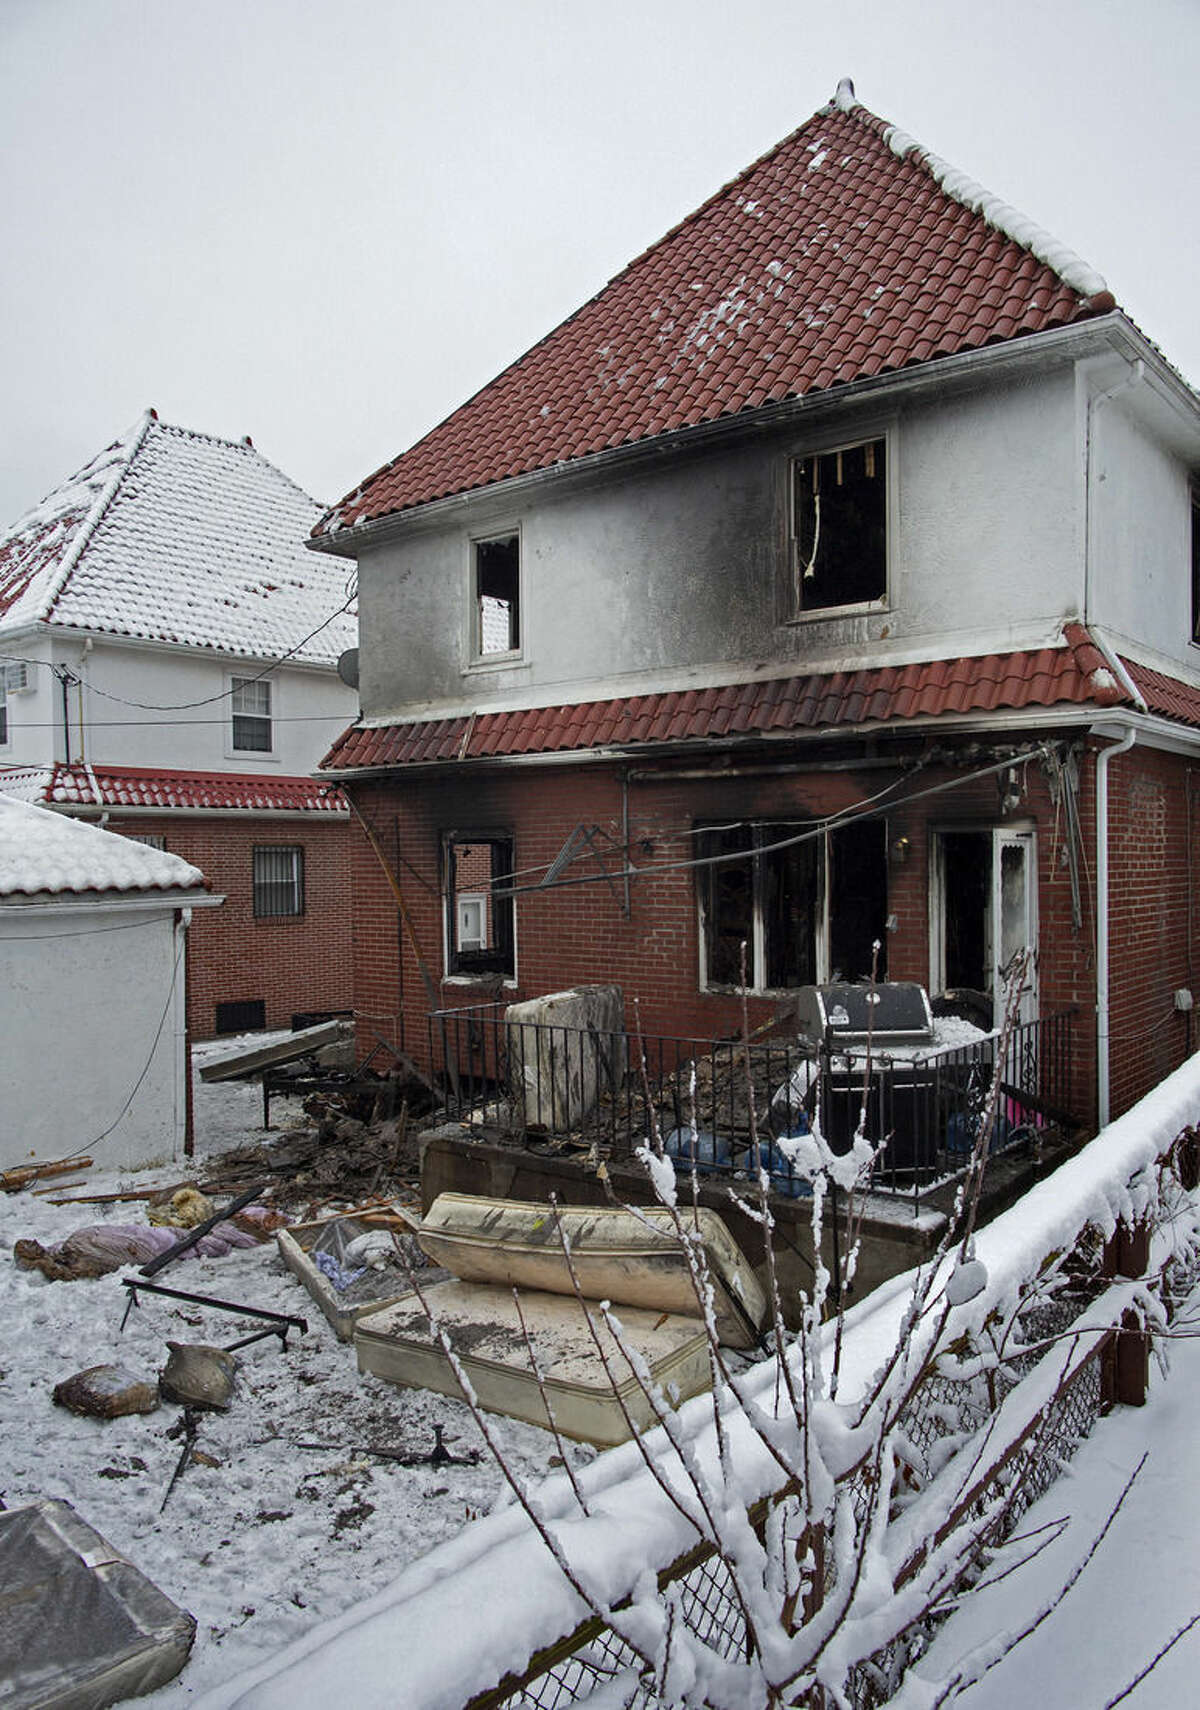 Debris lay scattered behind the house at the scene of a fire in the Brooklyn borough of New York Saturday, March 21, 2015. The fire raged through the residence early Saturday, killing seven children and leaving two other people in critical condition, authorities said. (AP Photo/Craig Ruttle)